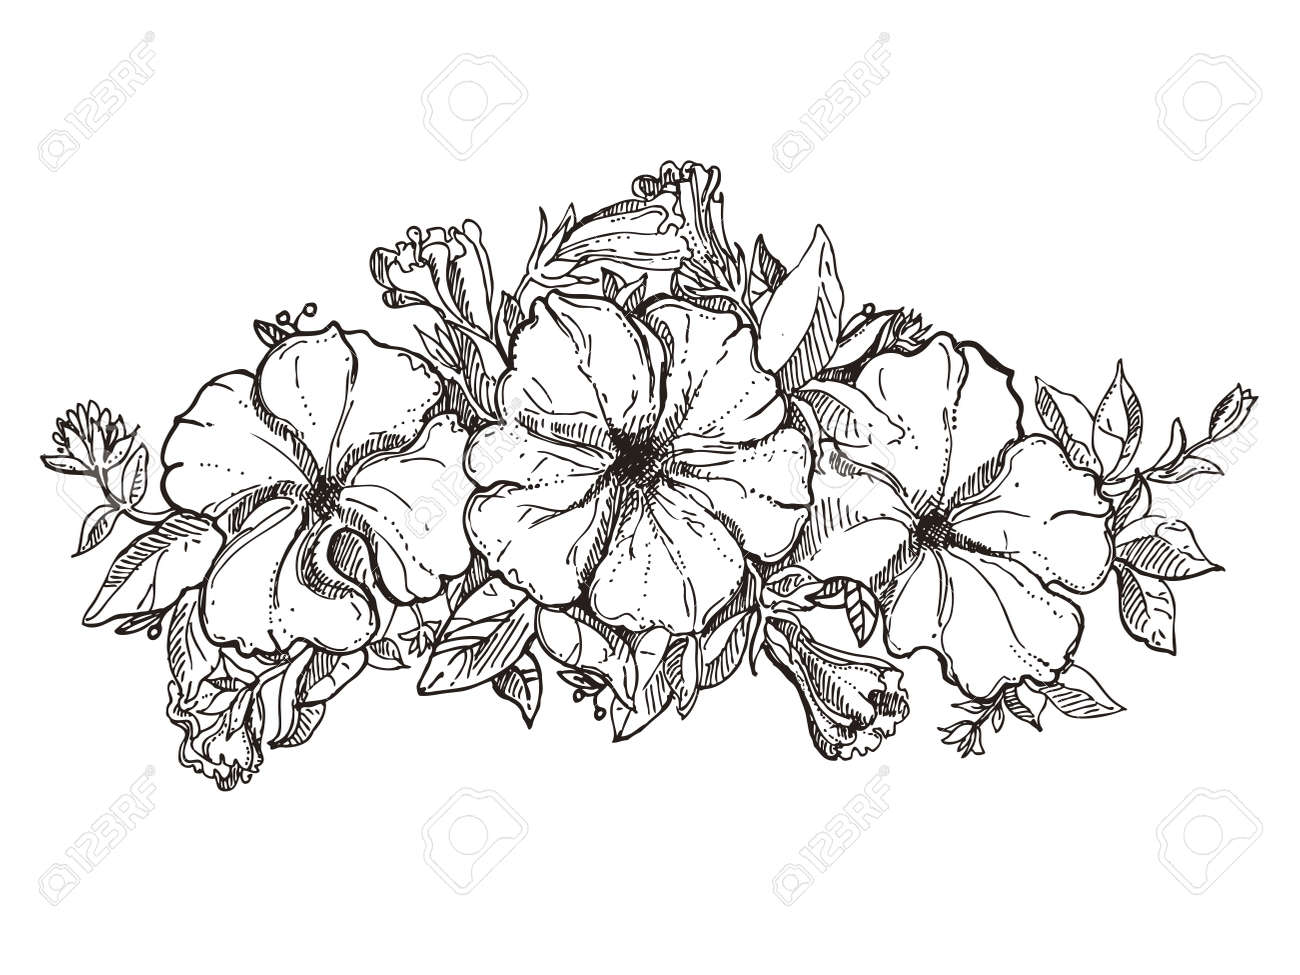 Black And White Floral Ornament With Petunia Flower Sketch Royalty